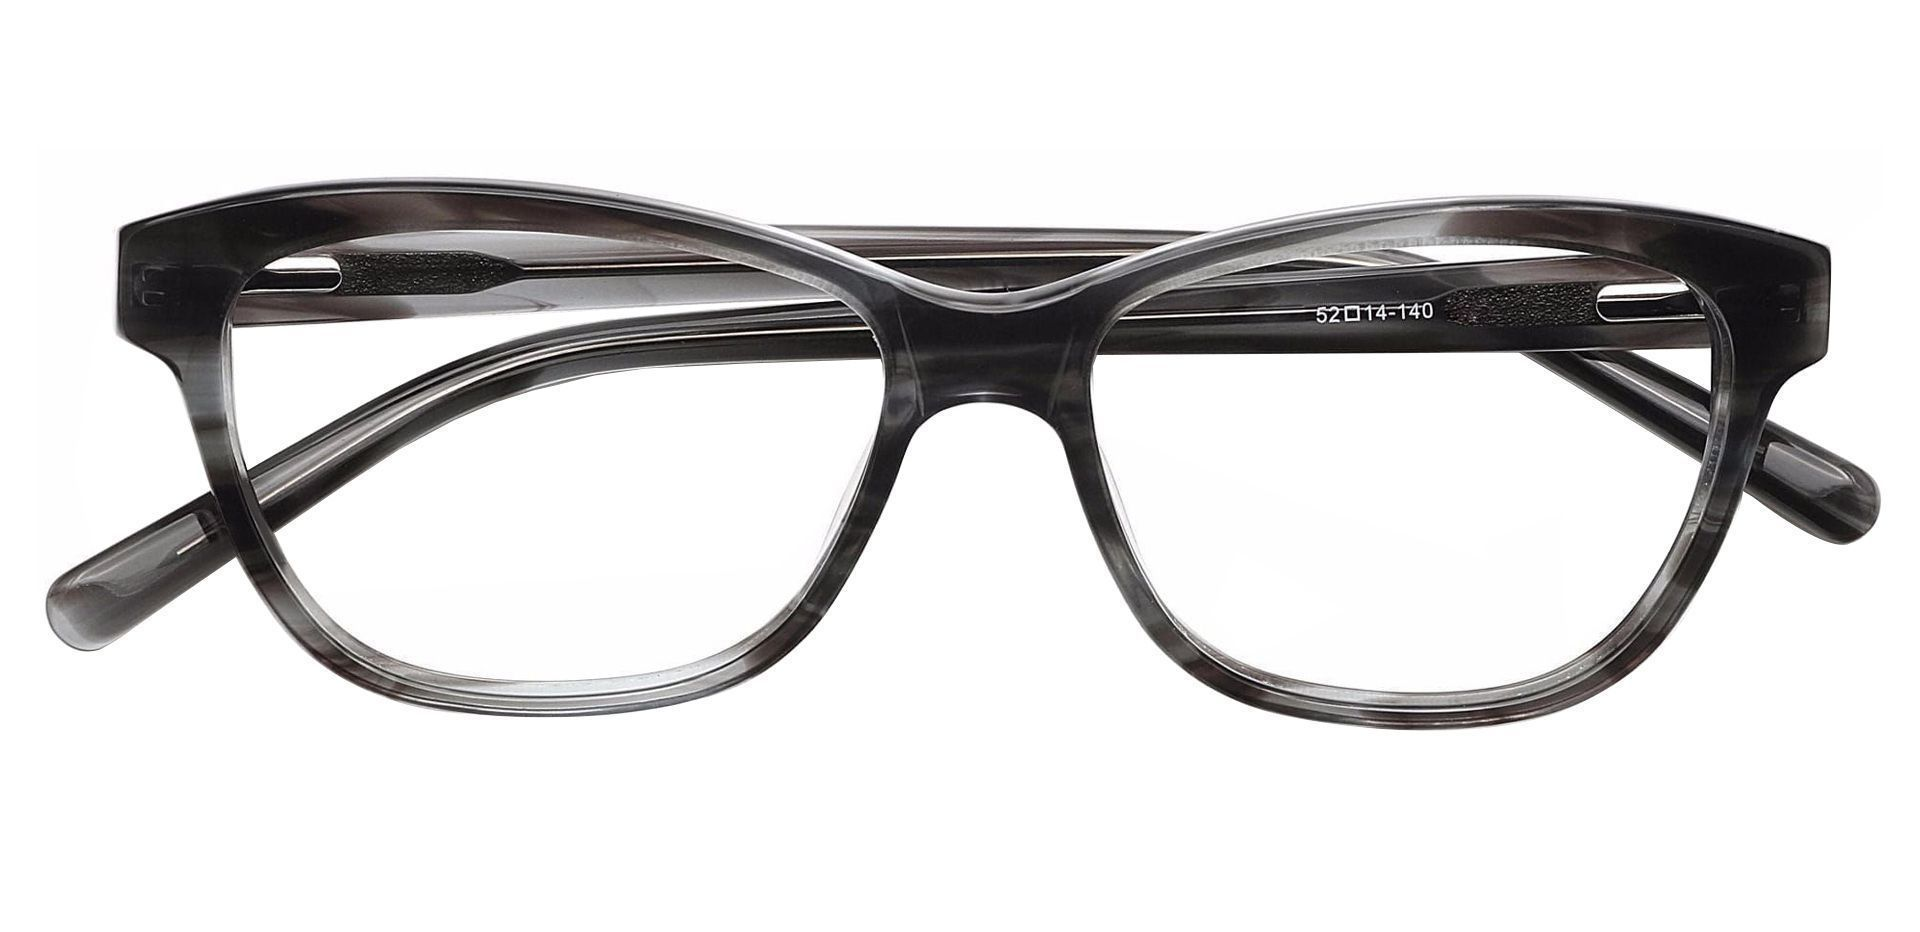 Verve Cat-eye Progressive Glasses - Gray